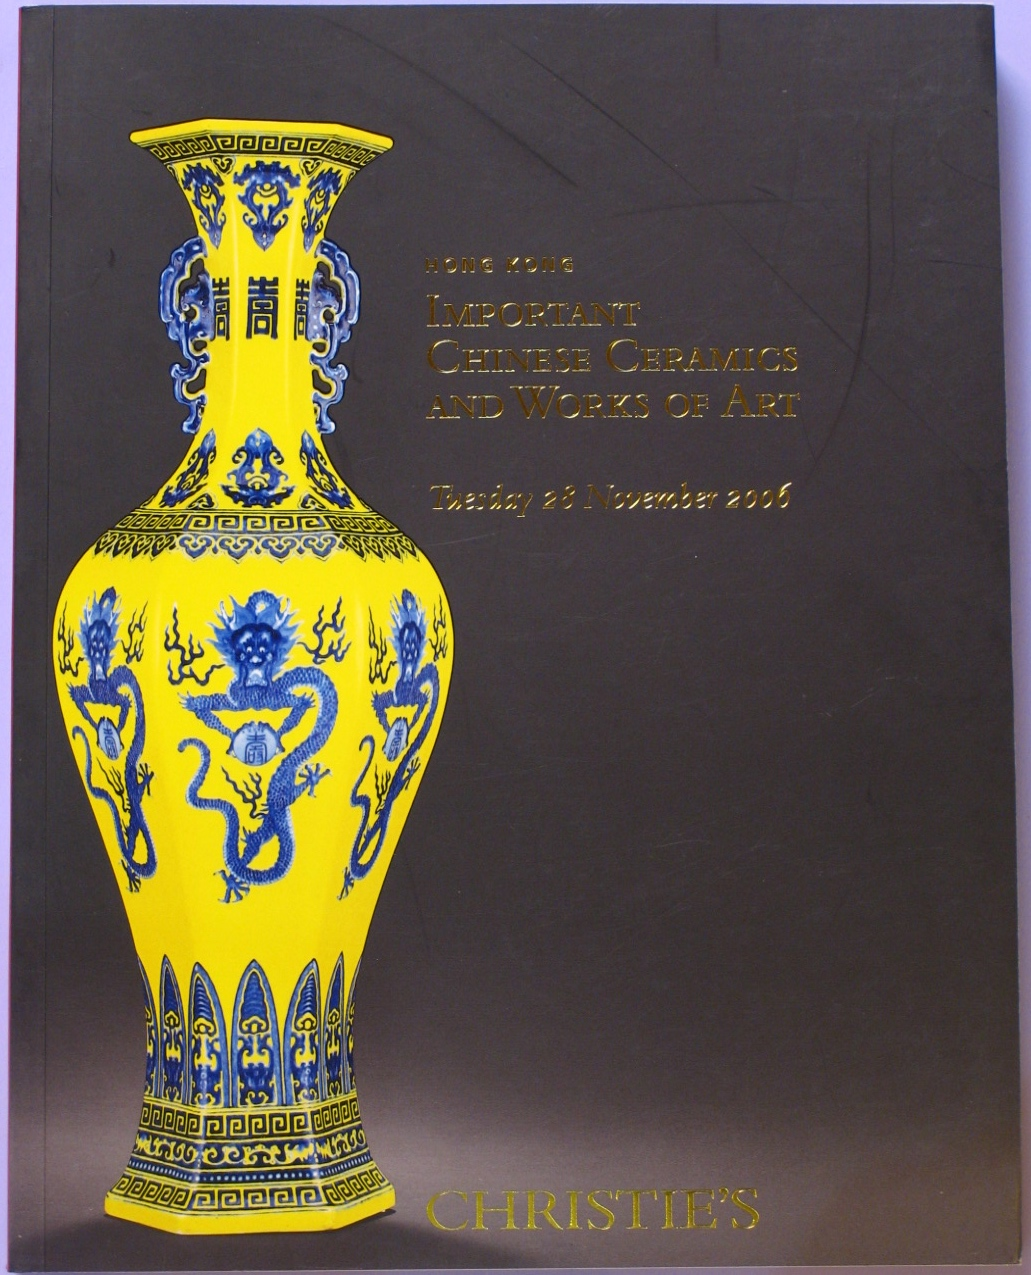 CHK20061129: Bookshop: [2006] Christie's Hong Kong Important Chinese Ceramics and Works of Art